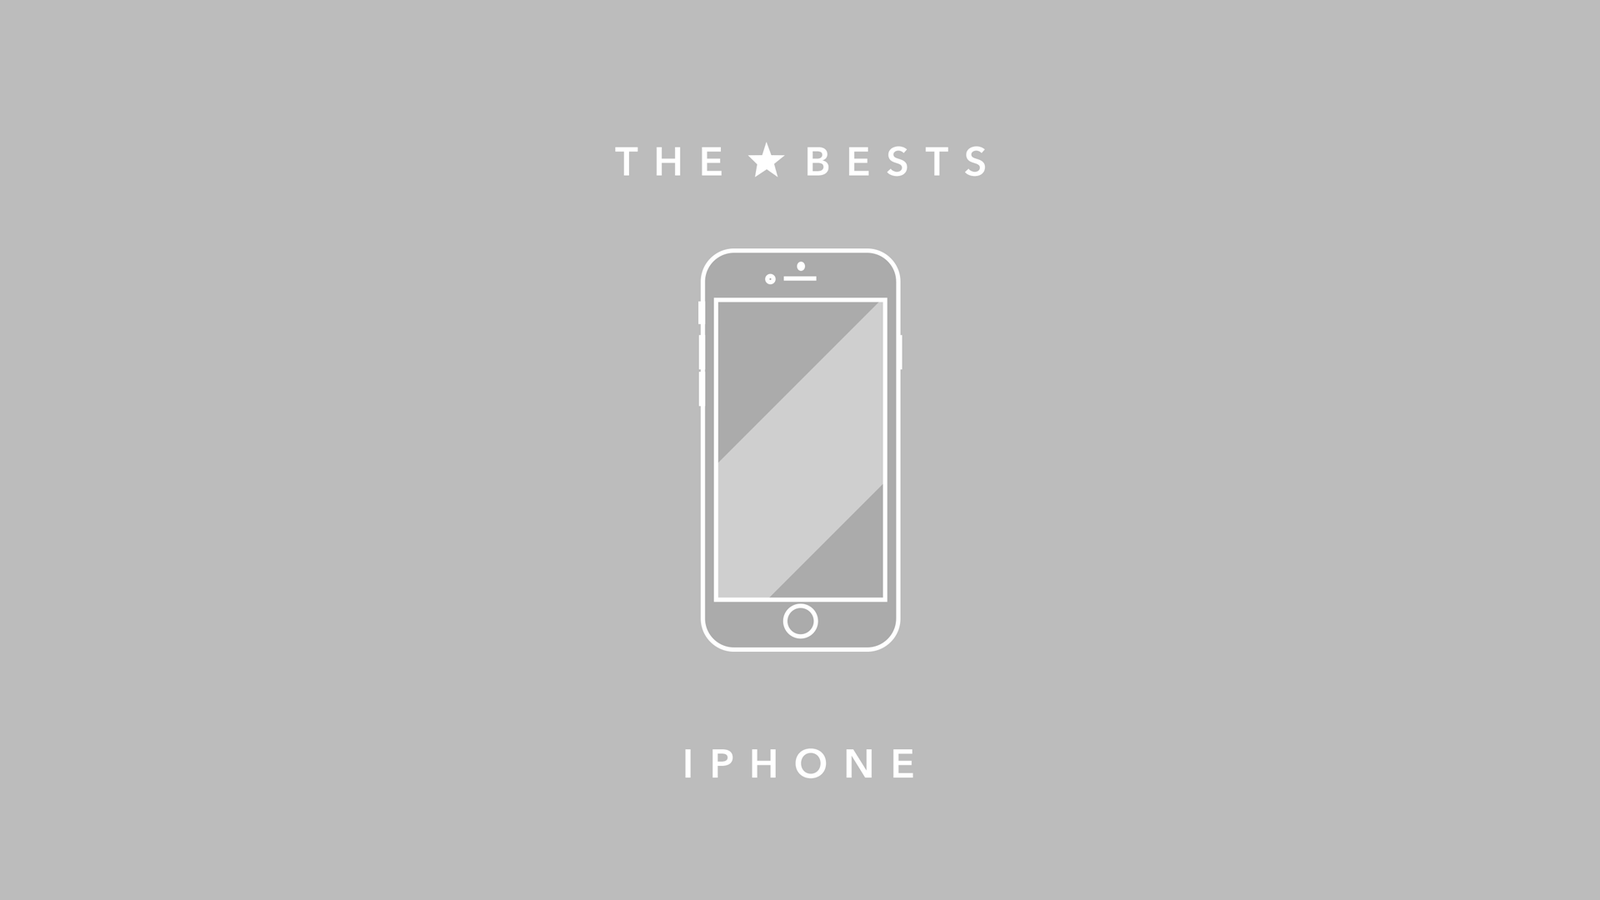 The 12 Best Games on the iPhone